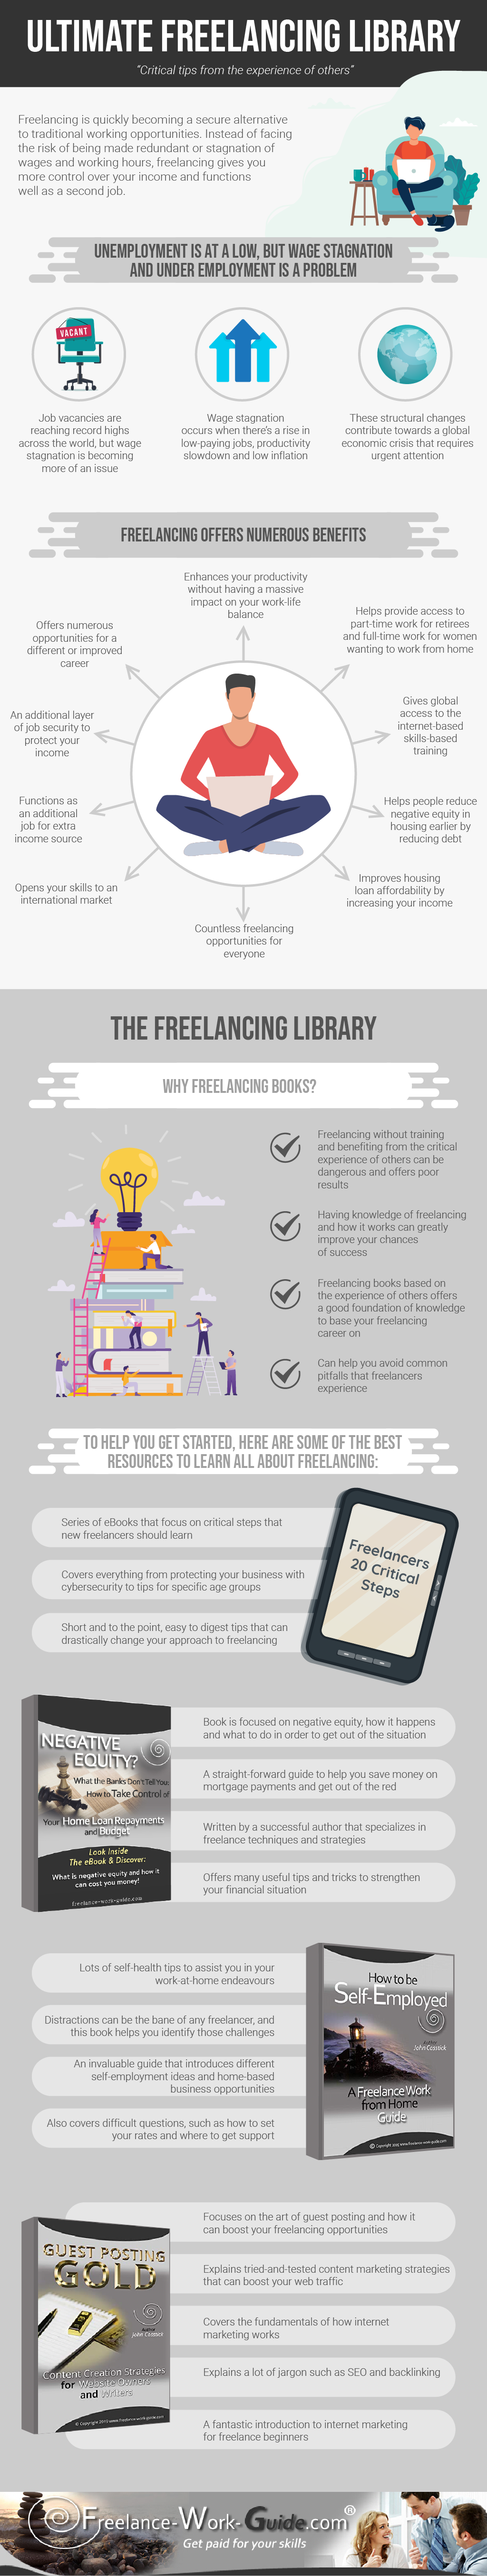 Ultimate Freelancing Library-Infographic